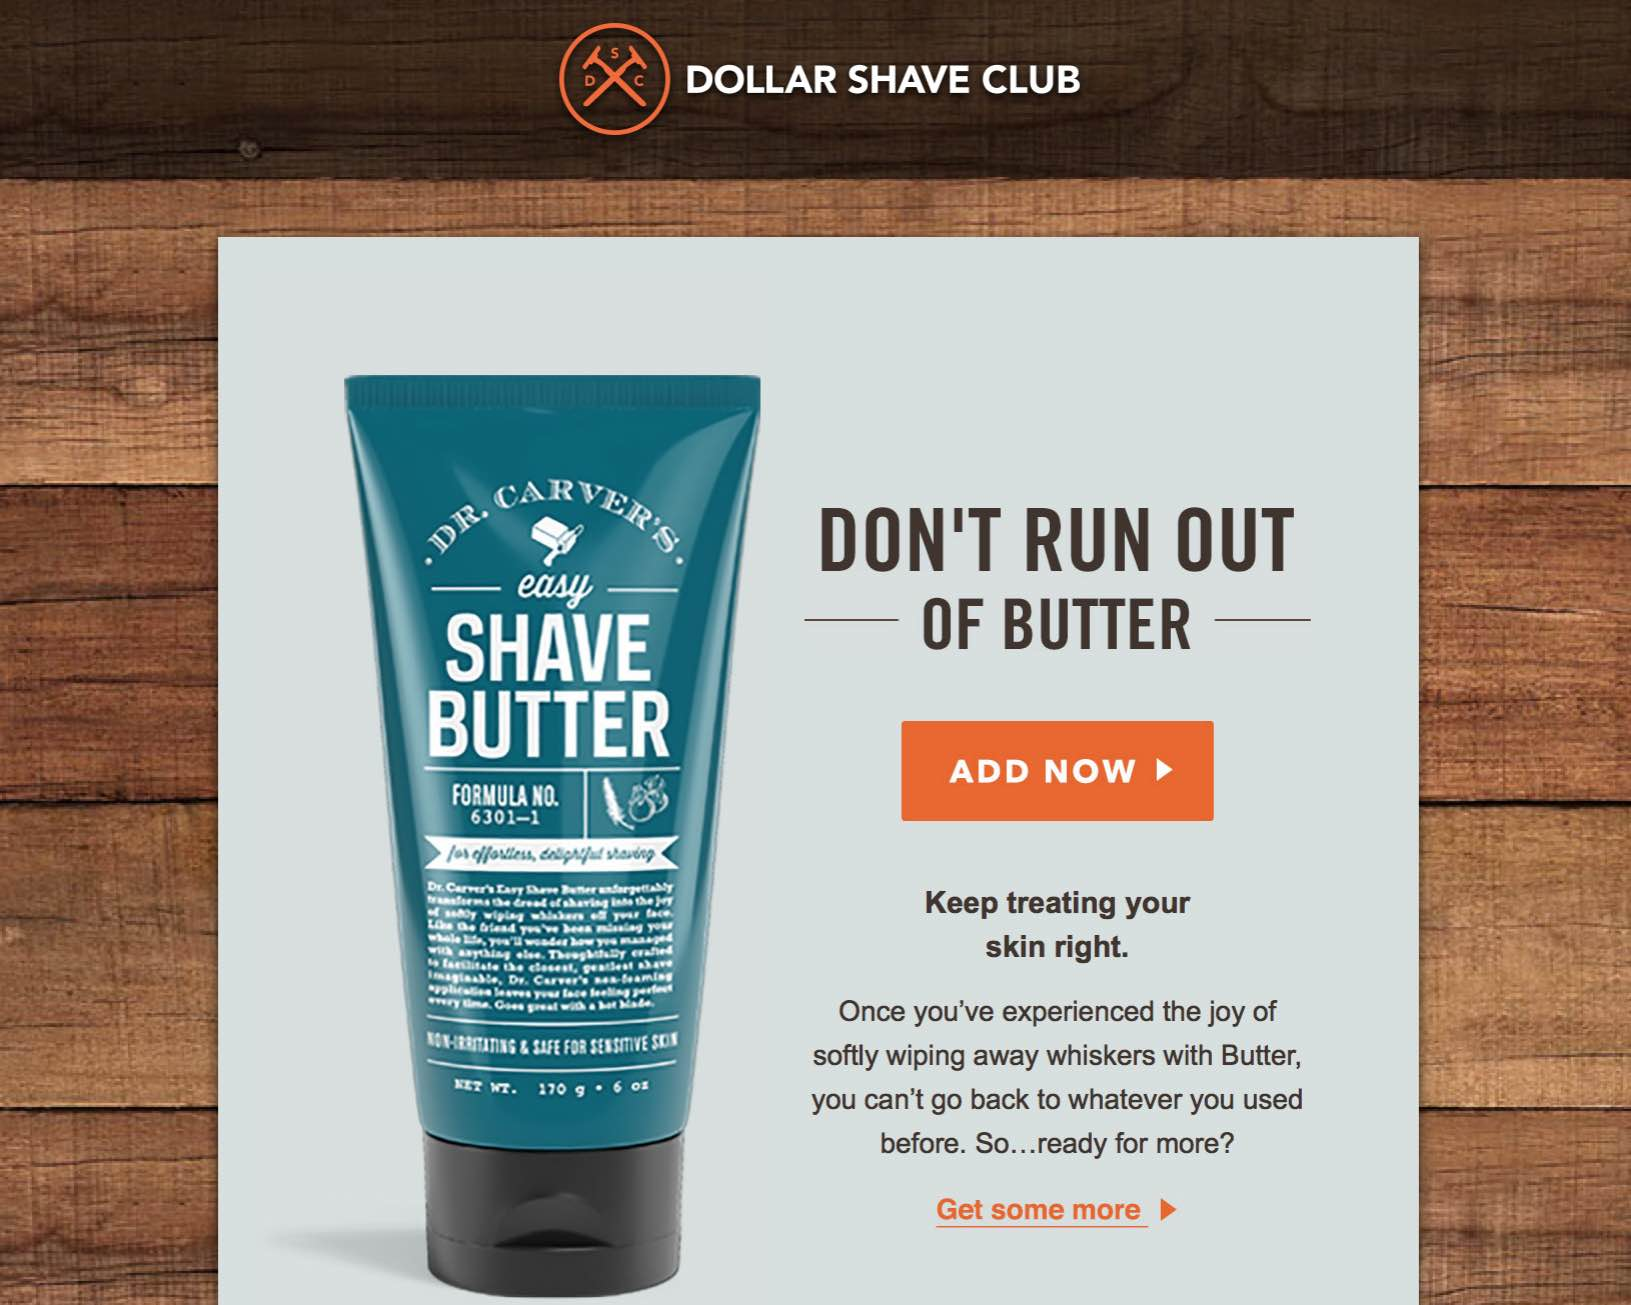 UX Dollar Shave Club Email Example